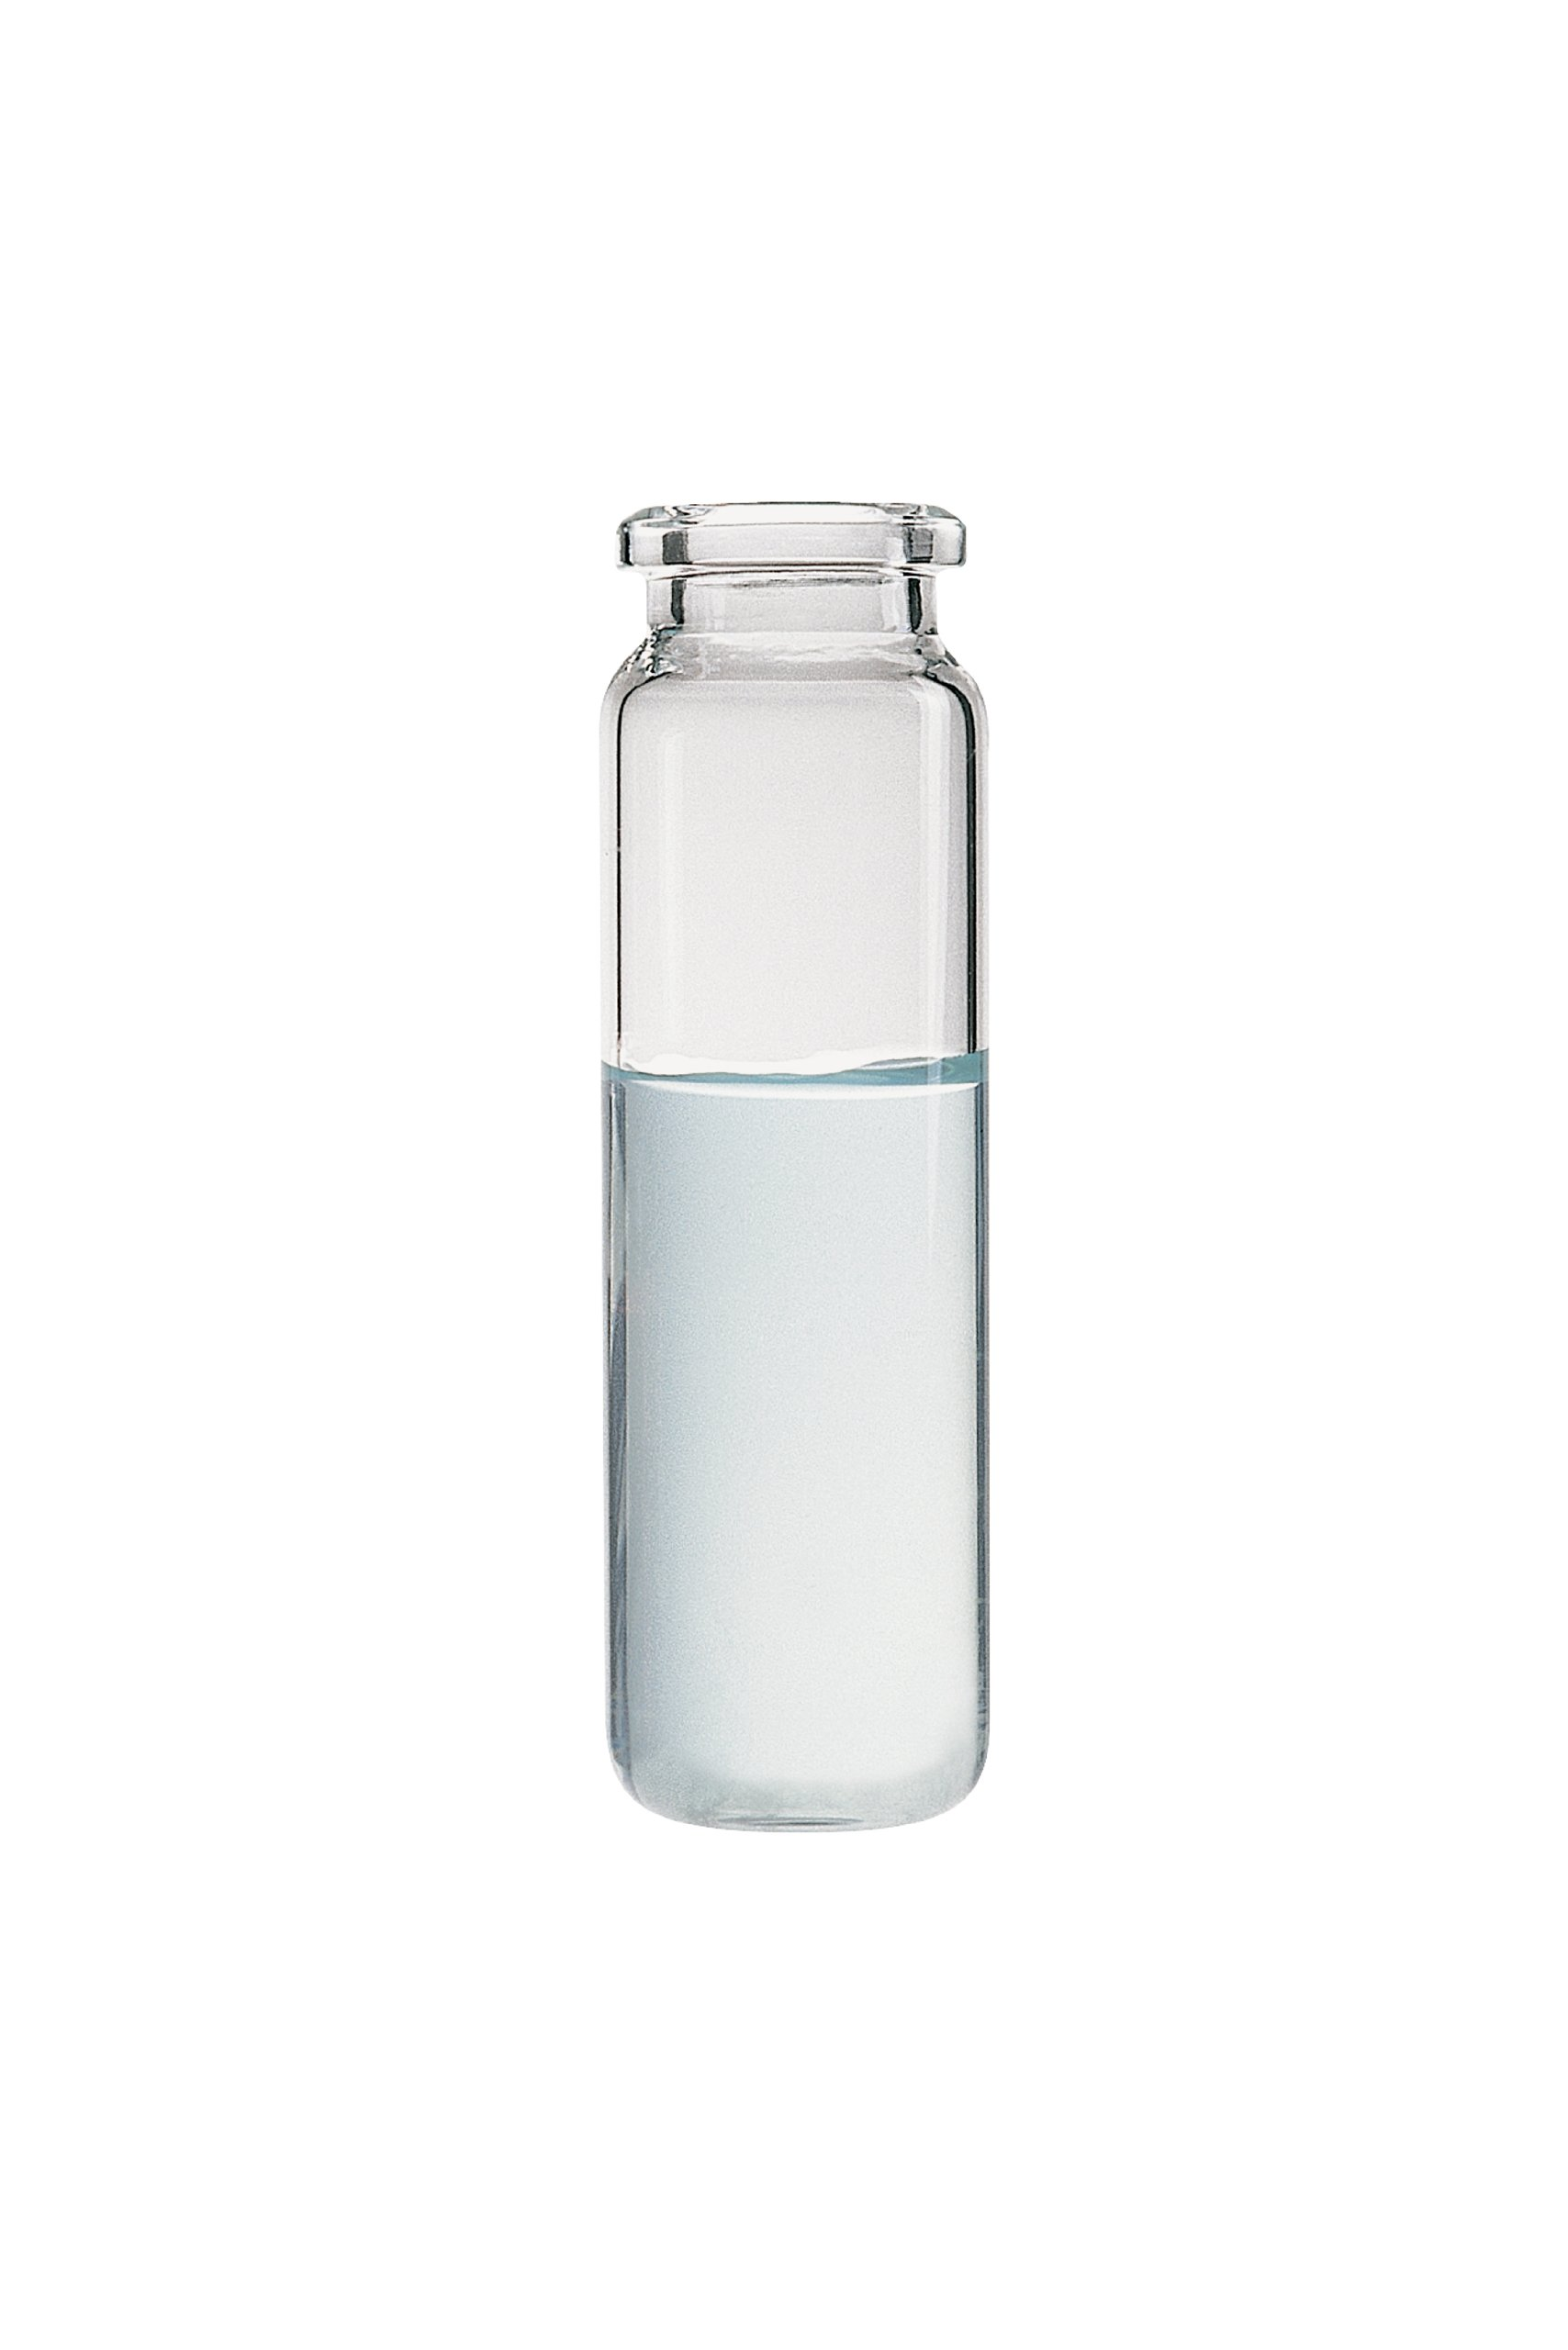 National Scientific Clear Glass Beveled Edge Flat Bottom Headspace Vial, 20mL Capacity (Case of 1000)